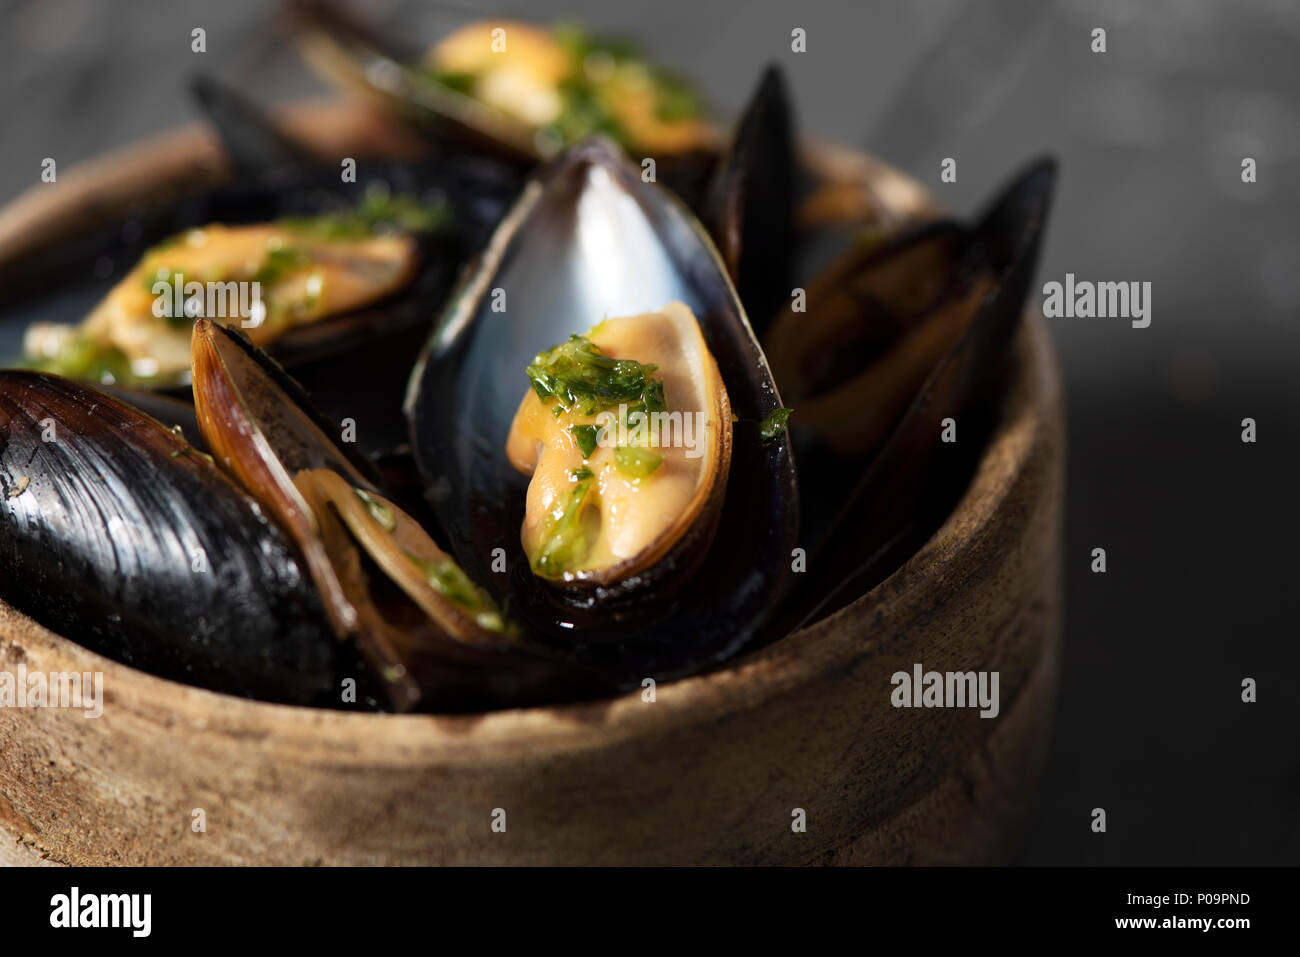 closeup of a boxwood bowl with moules mariniere, a french recipe of mussels, on a rustic wooden table - Stock Image